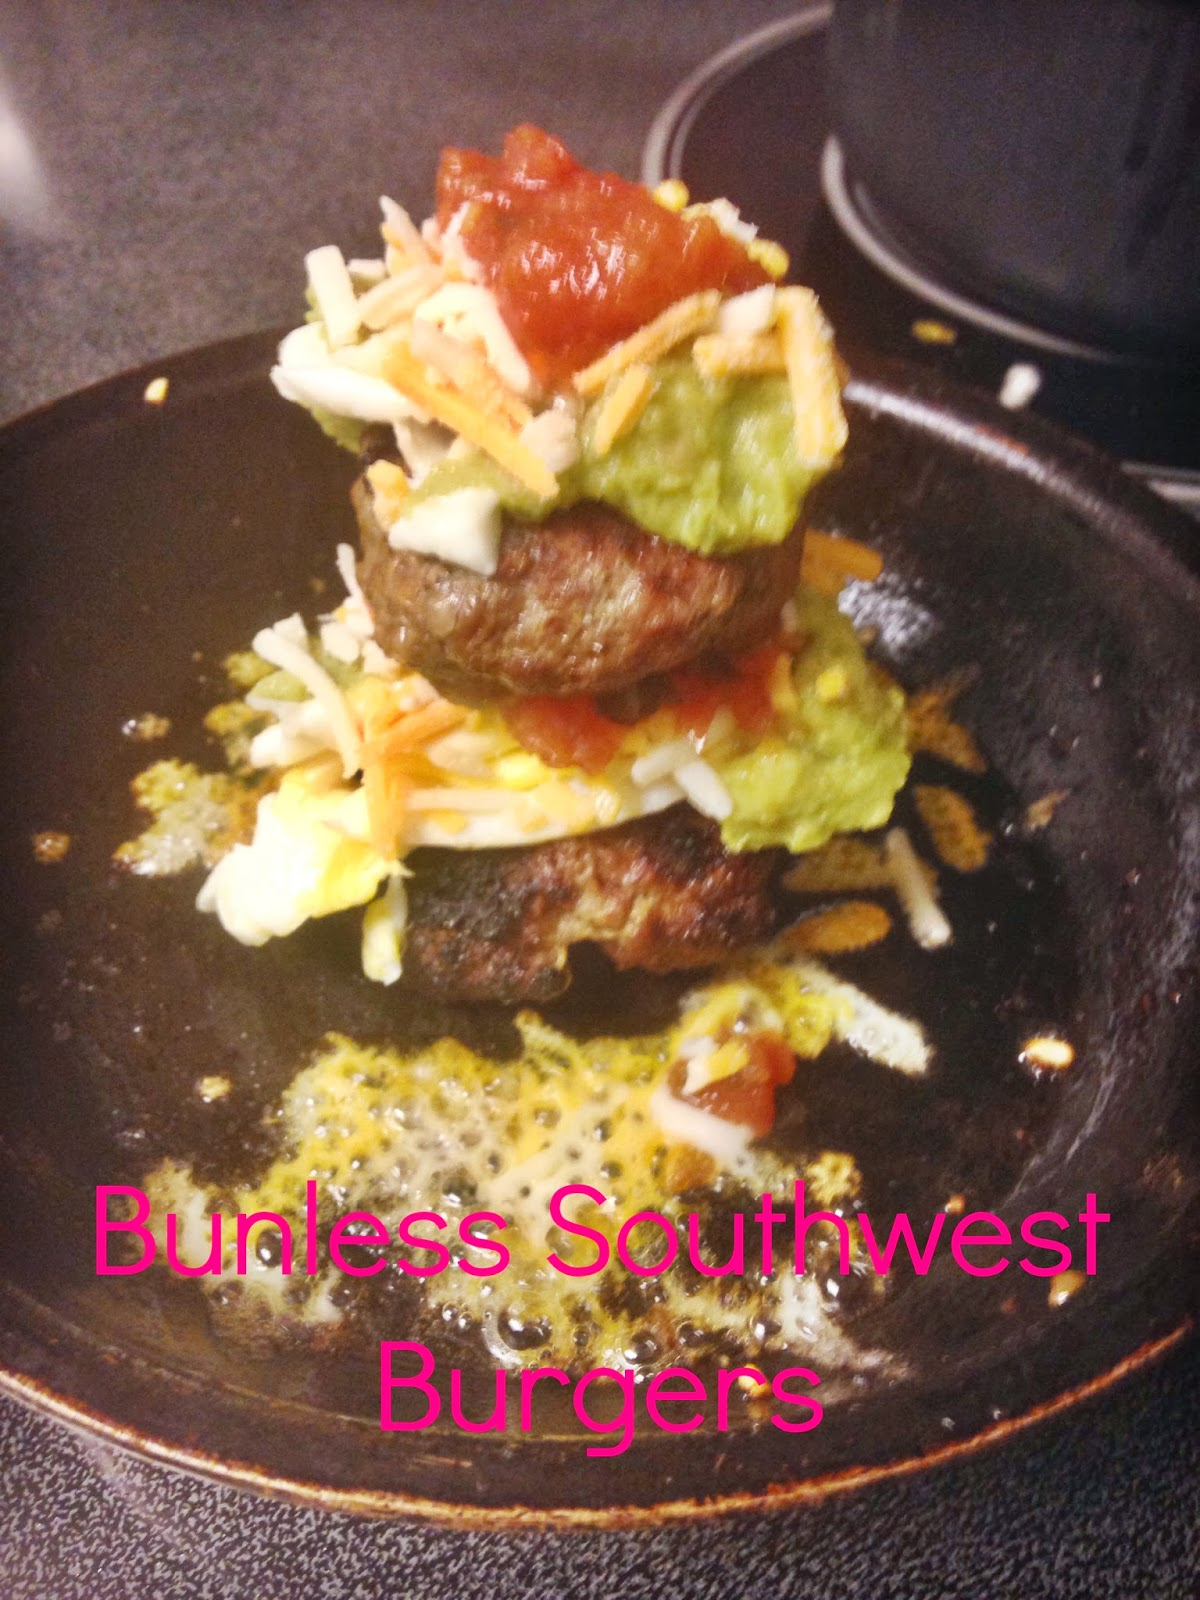 Bunless Southwest Burgers